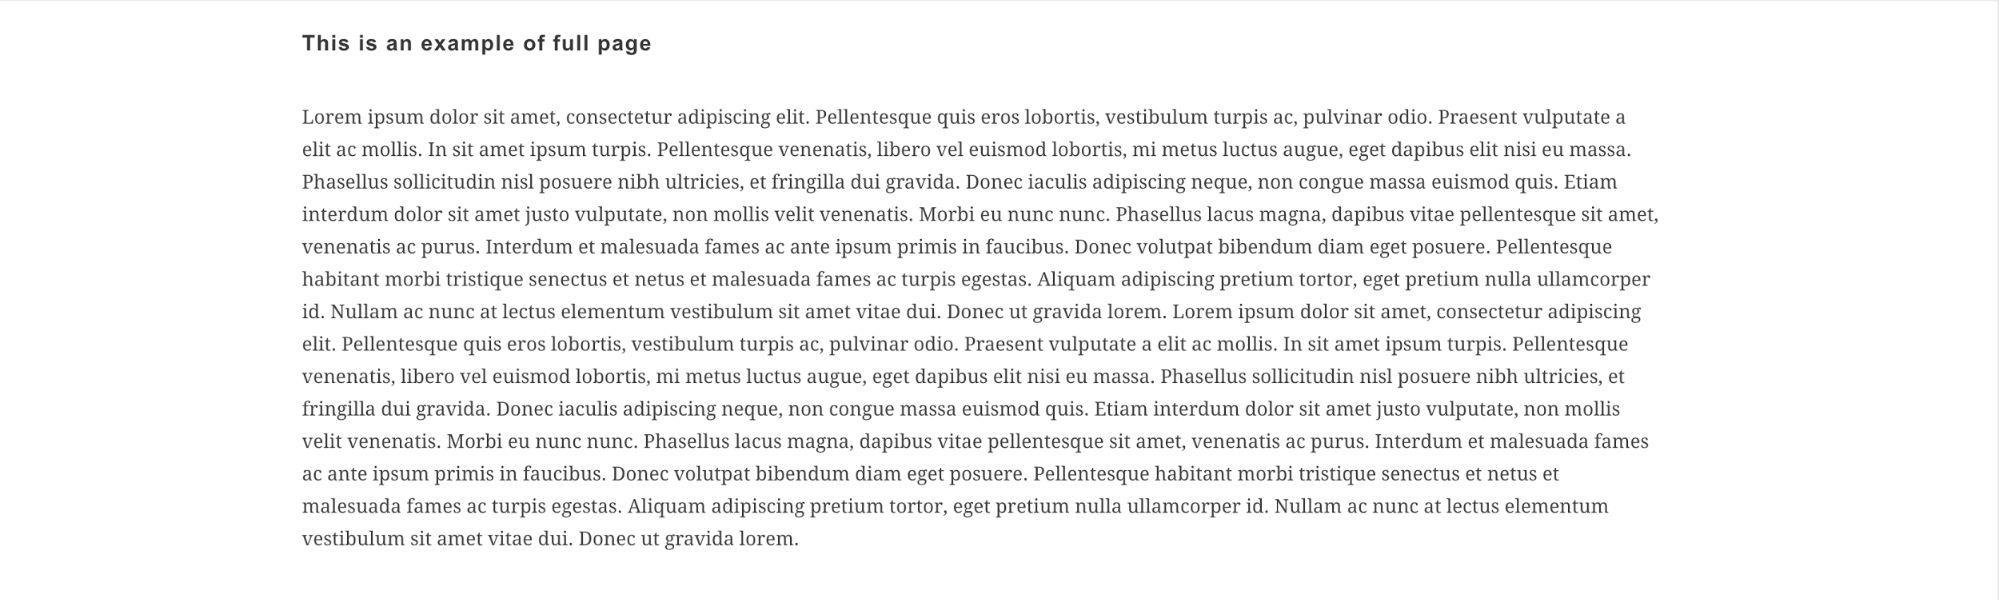 A sample of text in Lorem Ipsum formatted to be as wide as a page, making it difficult for users to track.